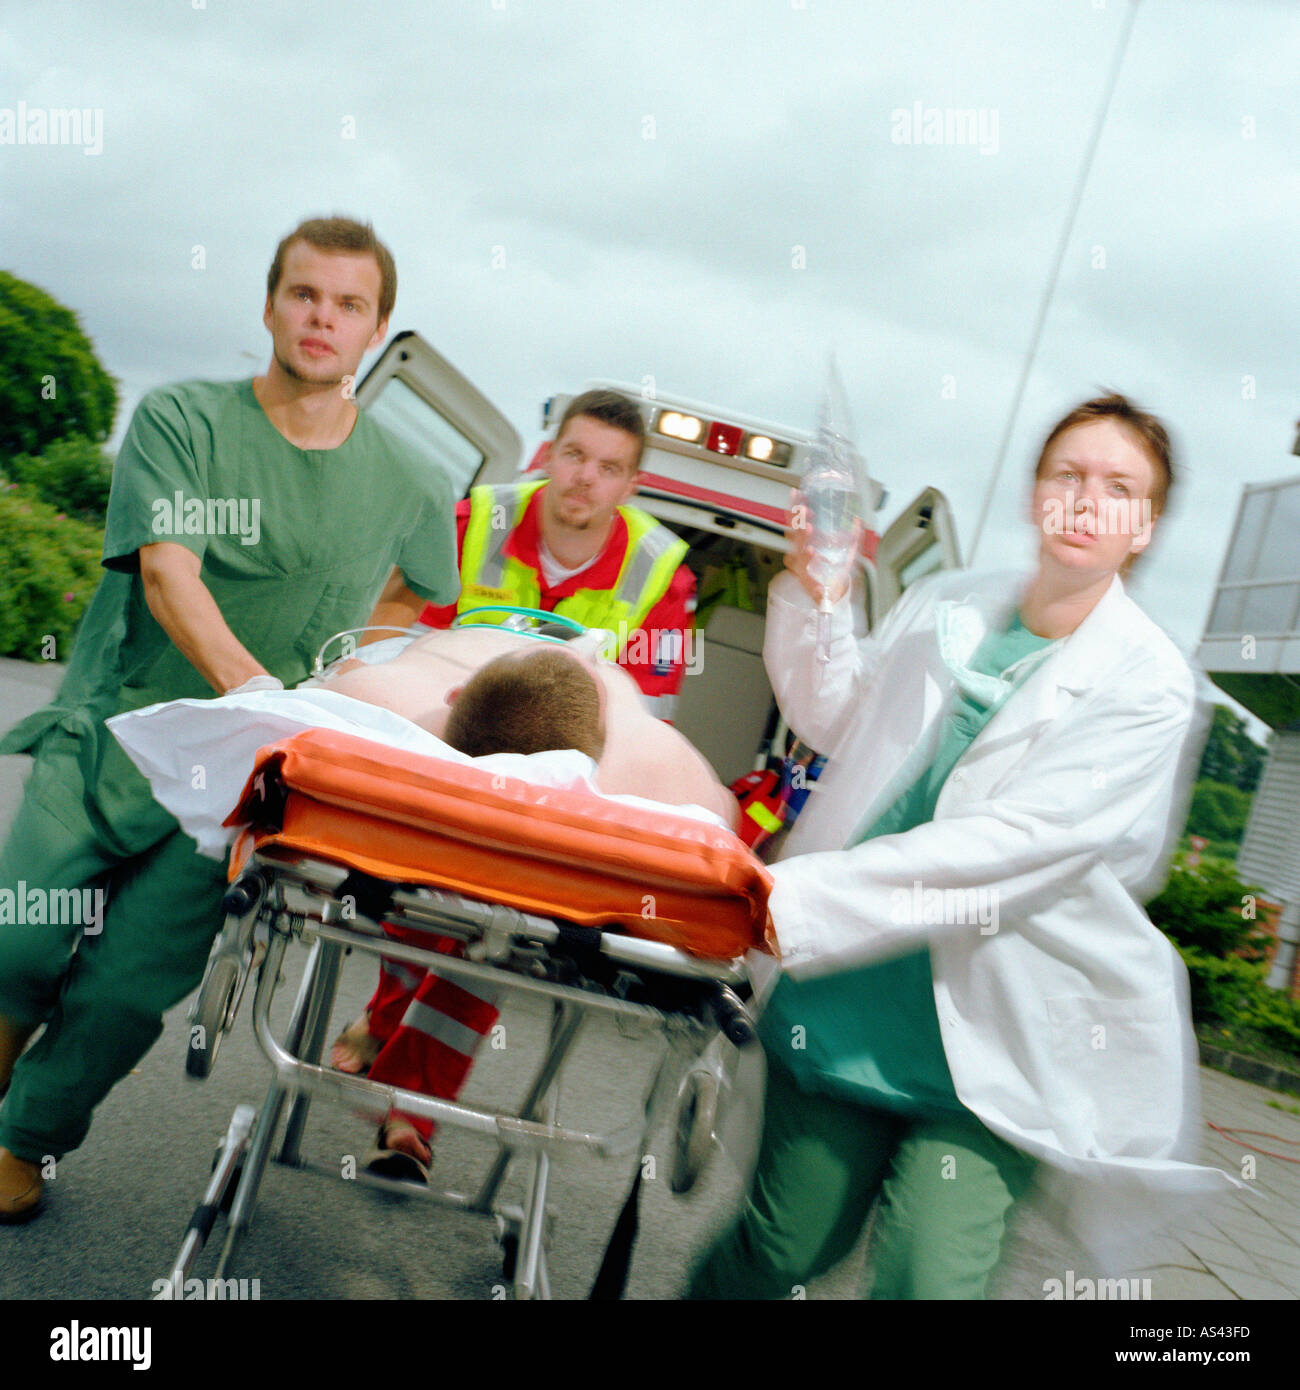 Ambulance staff with patient - Stock Image